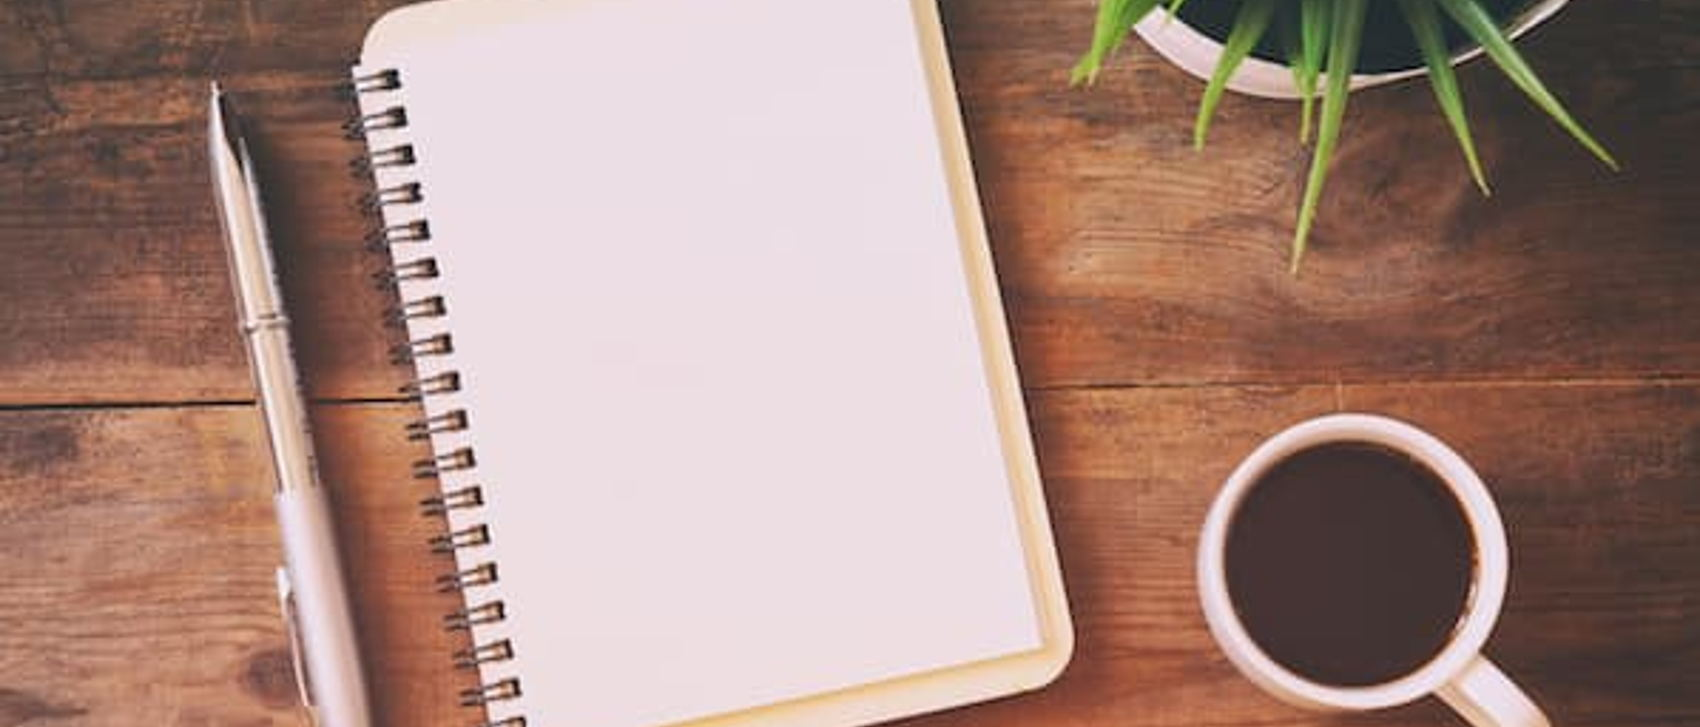 The Simple Productivity Hack For Getting More Done, Faster